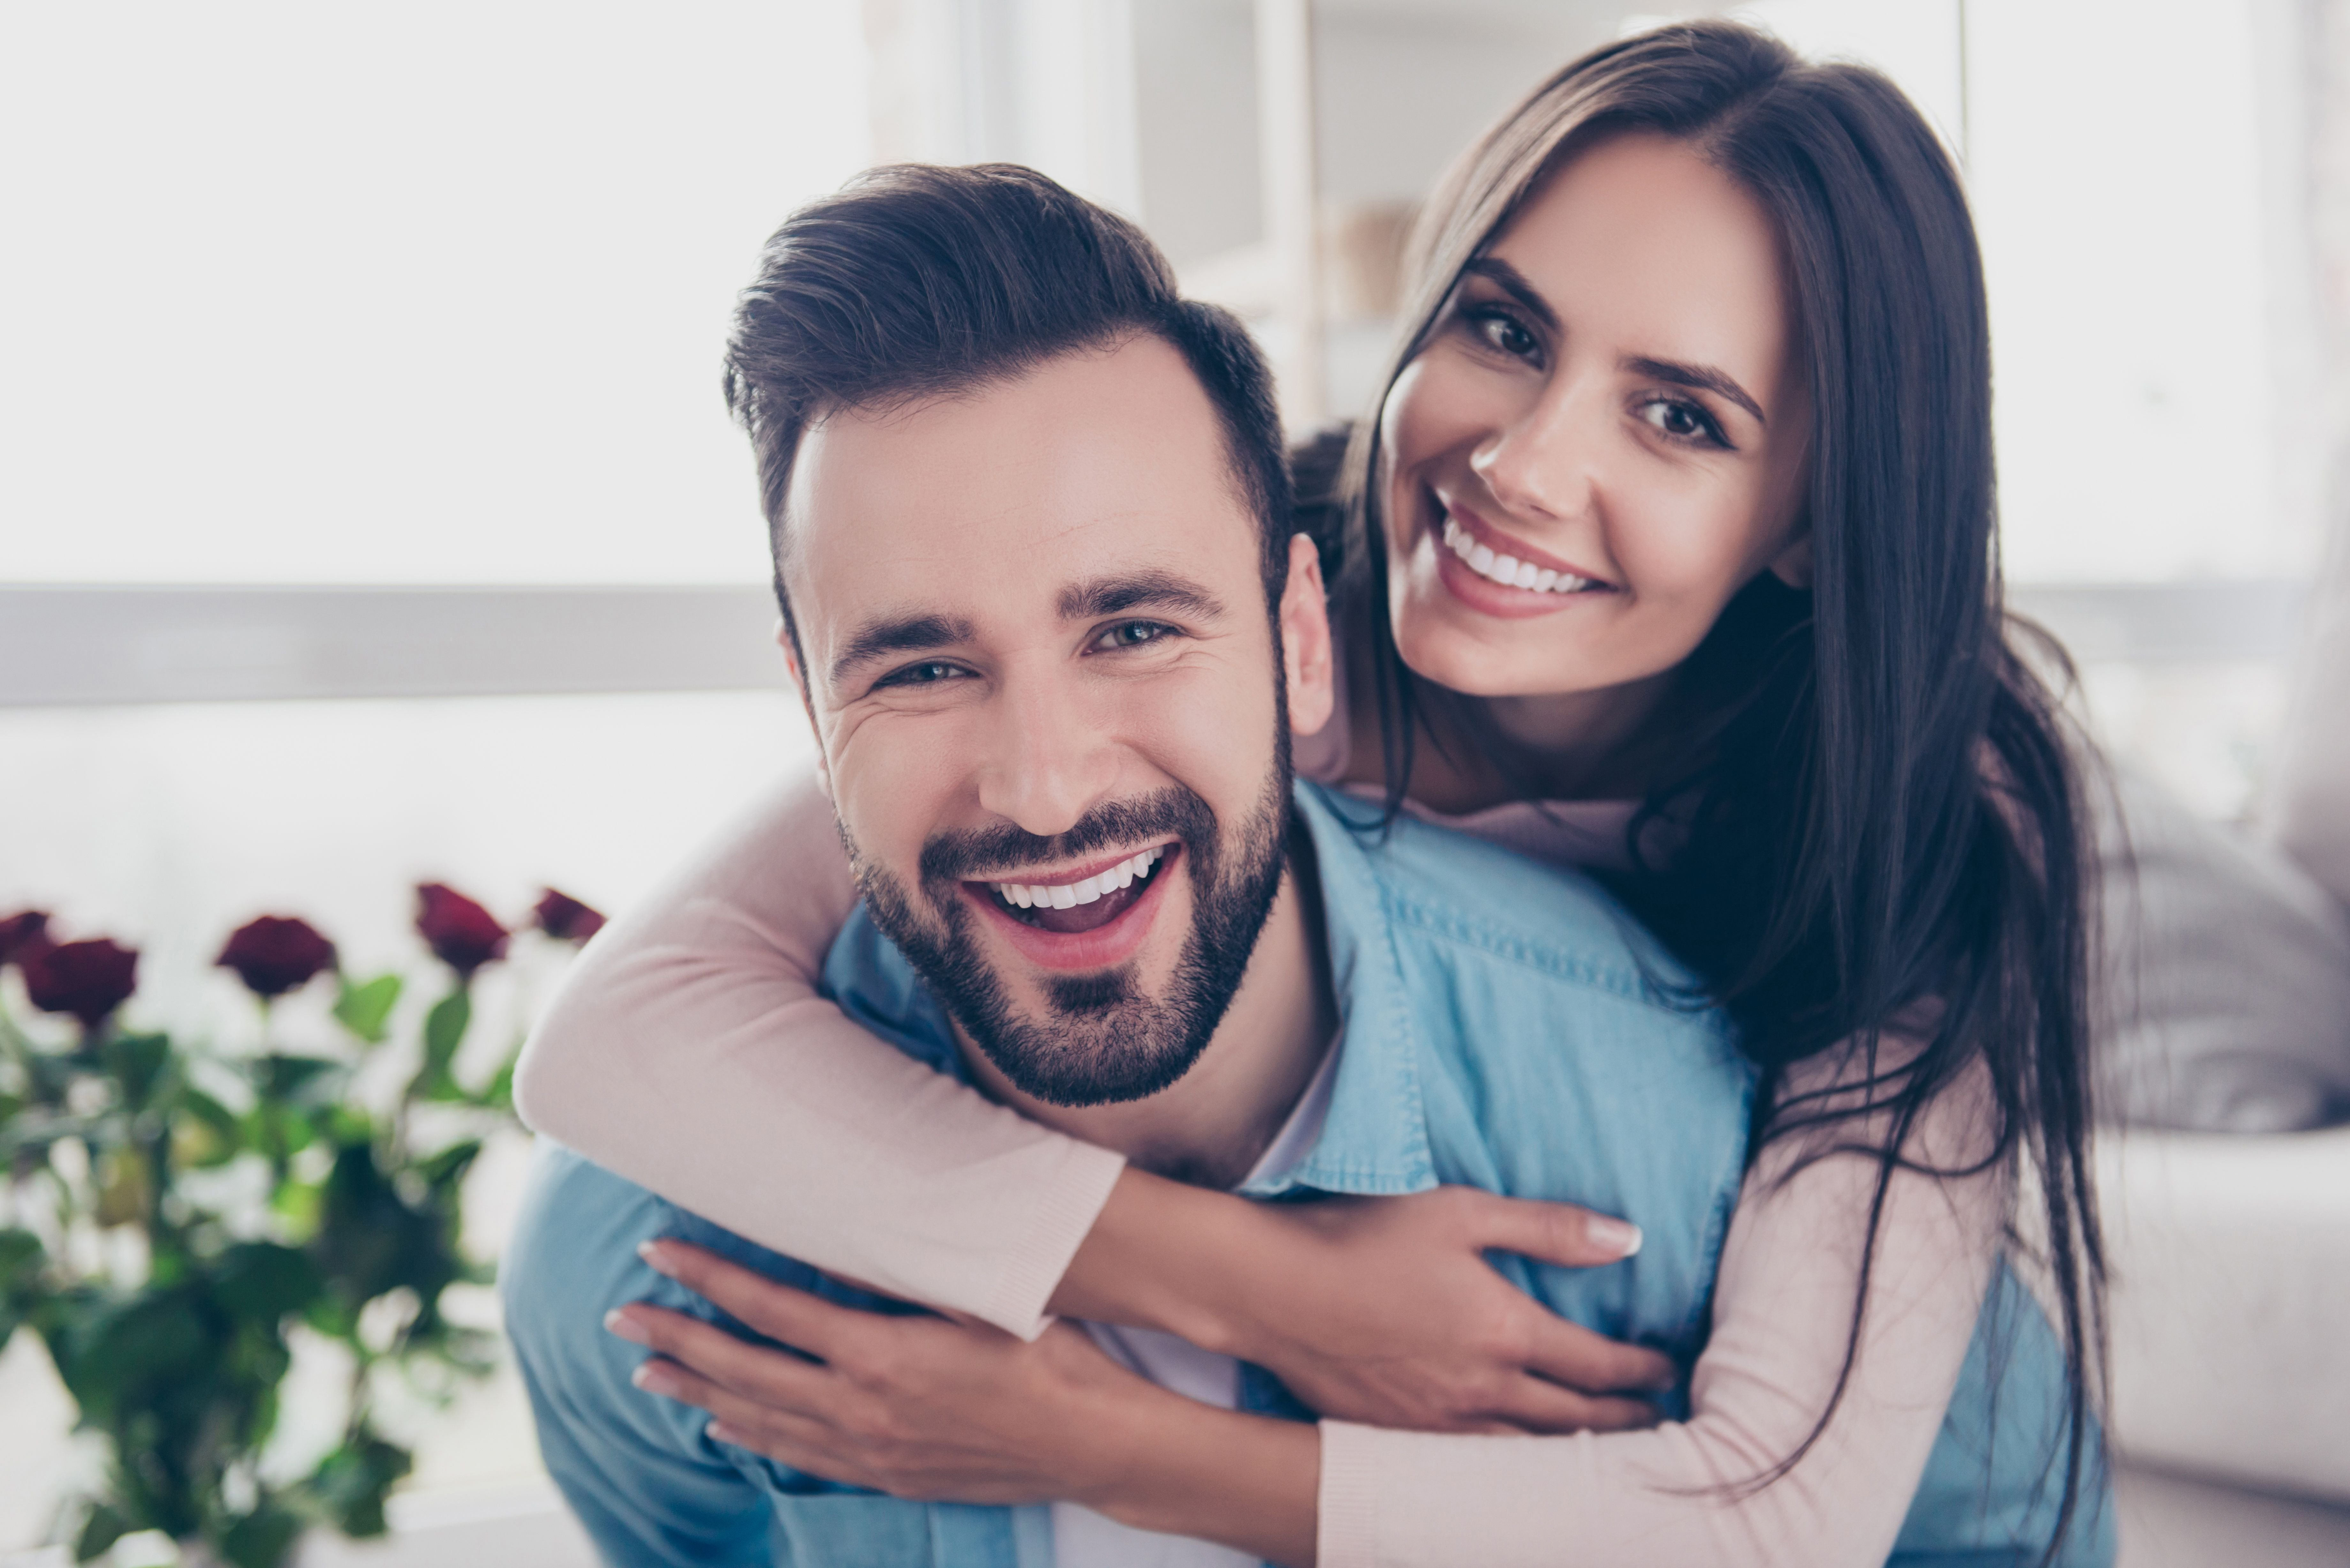 A woman hugging a man from behind.   Source: Shutterstock